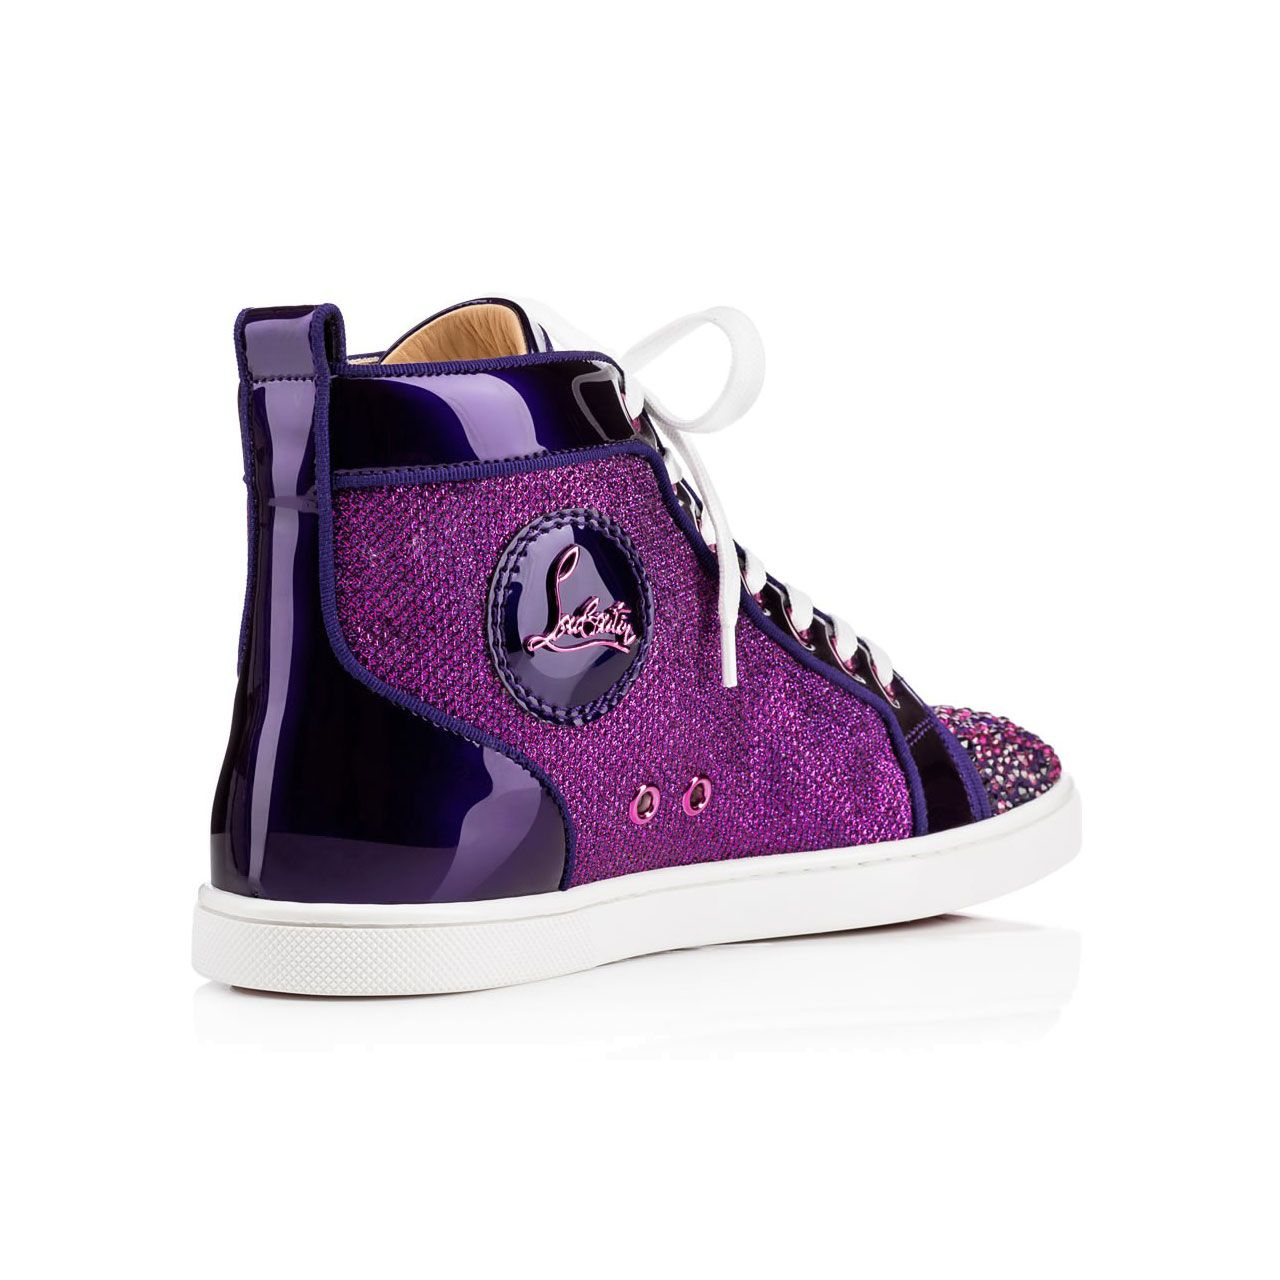 size 40 f7ede de98d reduced louboutin sneakers purple price 5ee13 b29ff